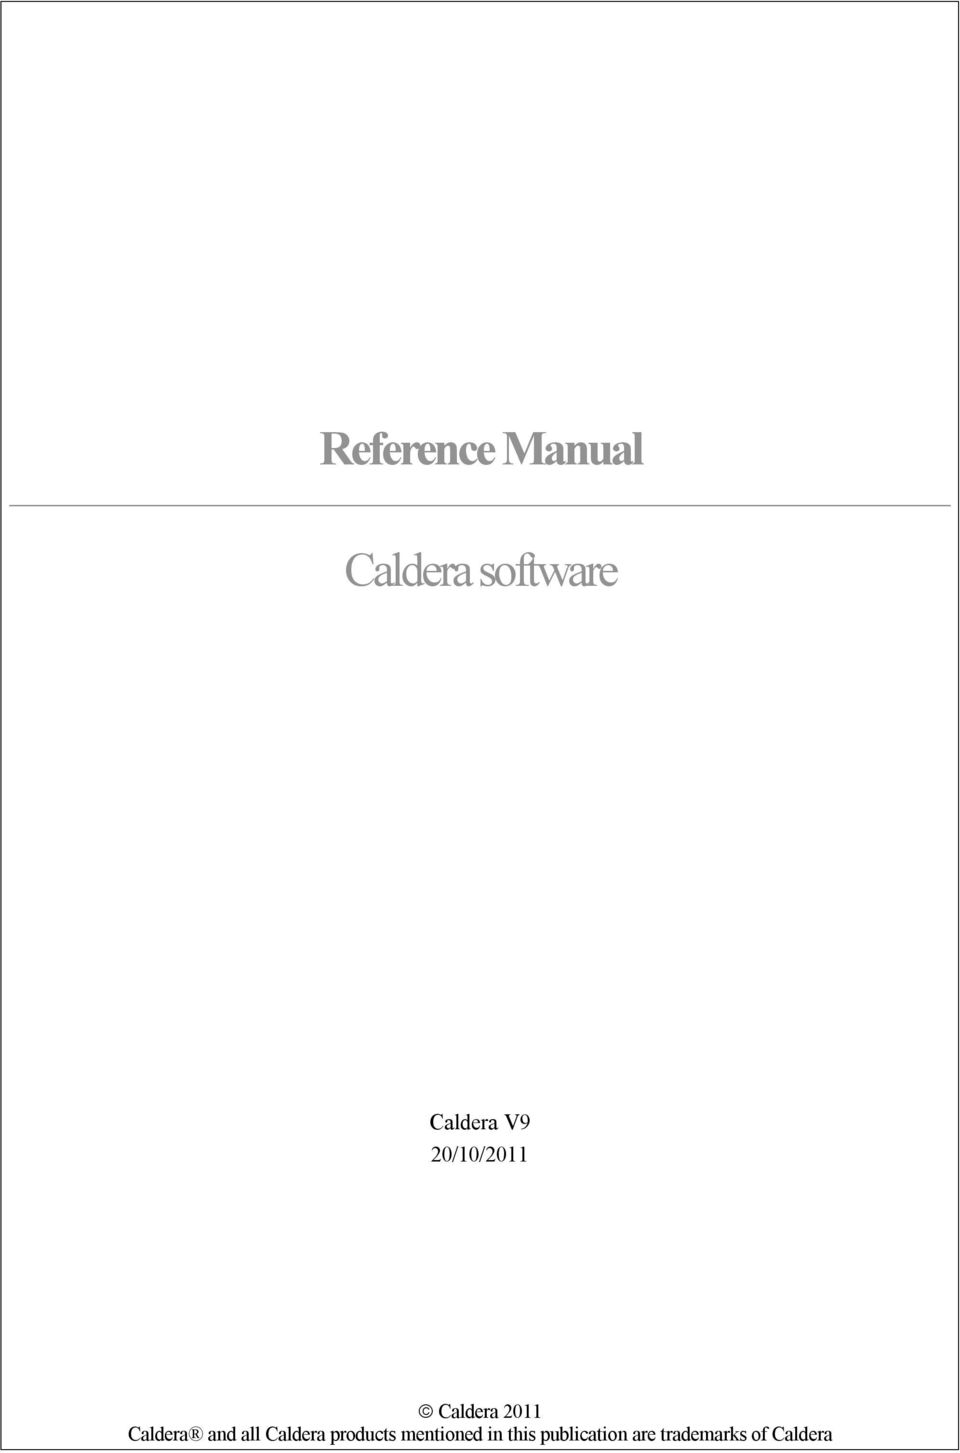 Reference Manual  Caldera software - PDF